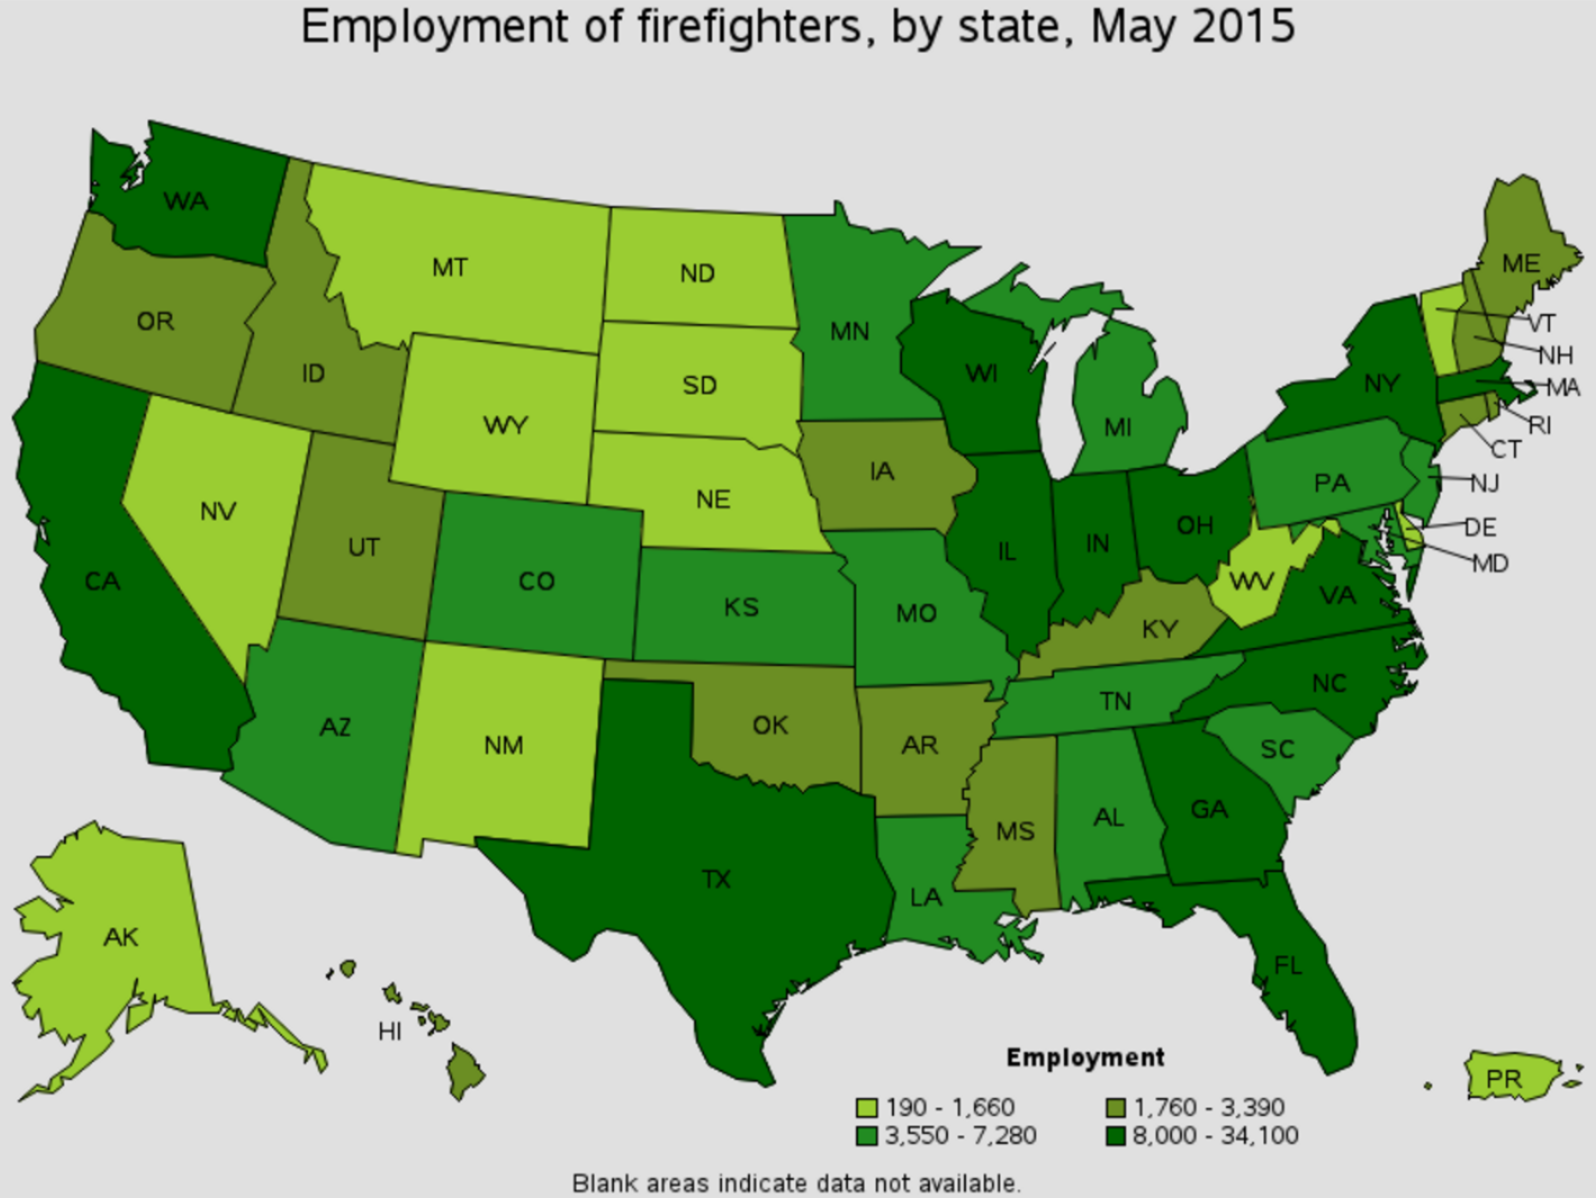 firefighter job outlook by state Salida California